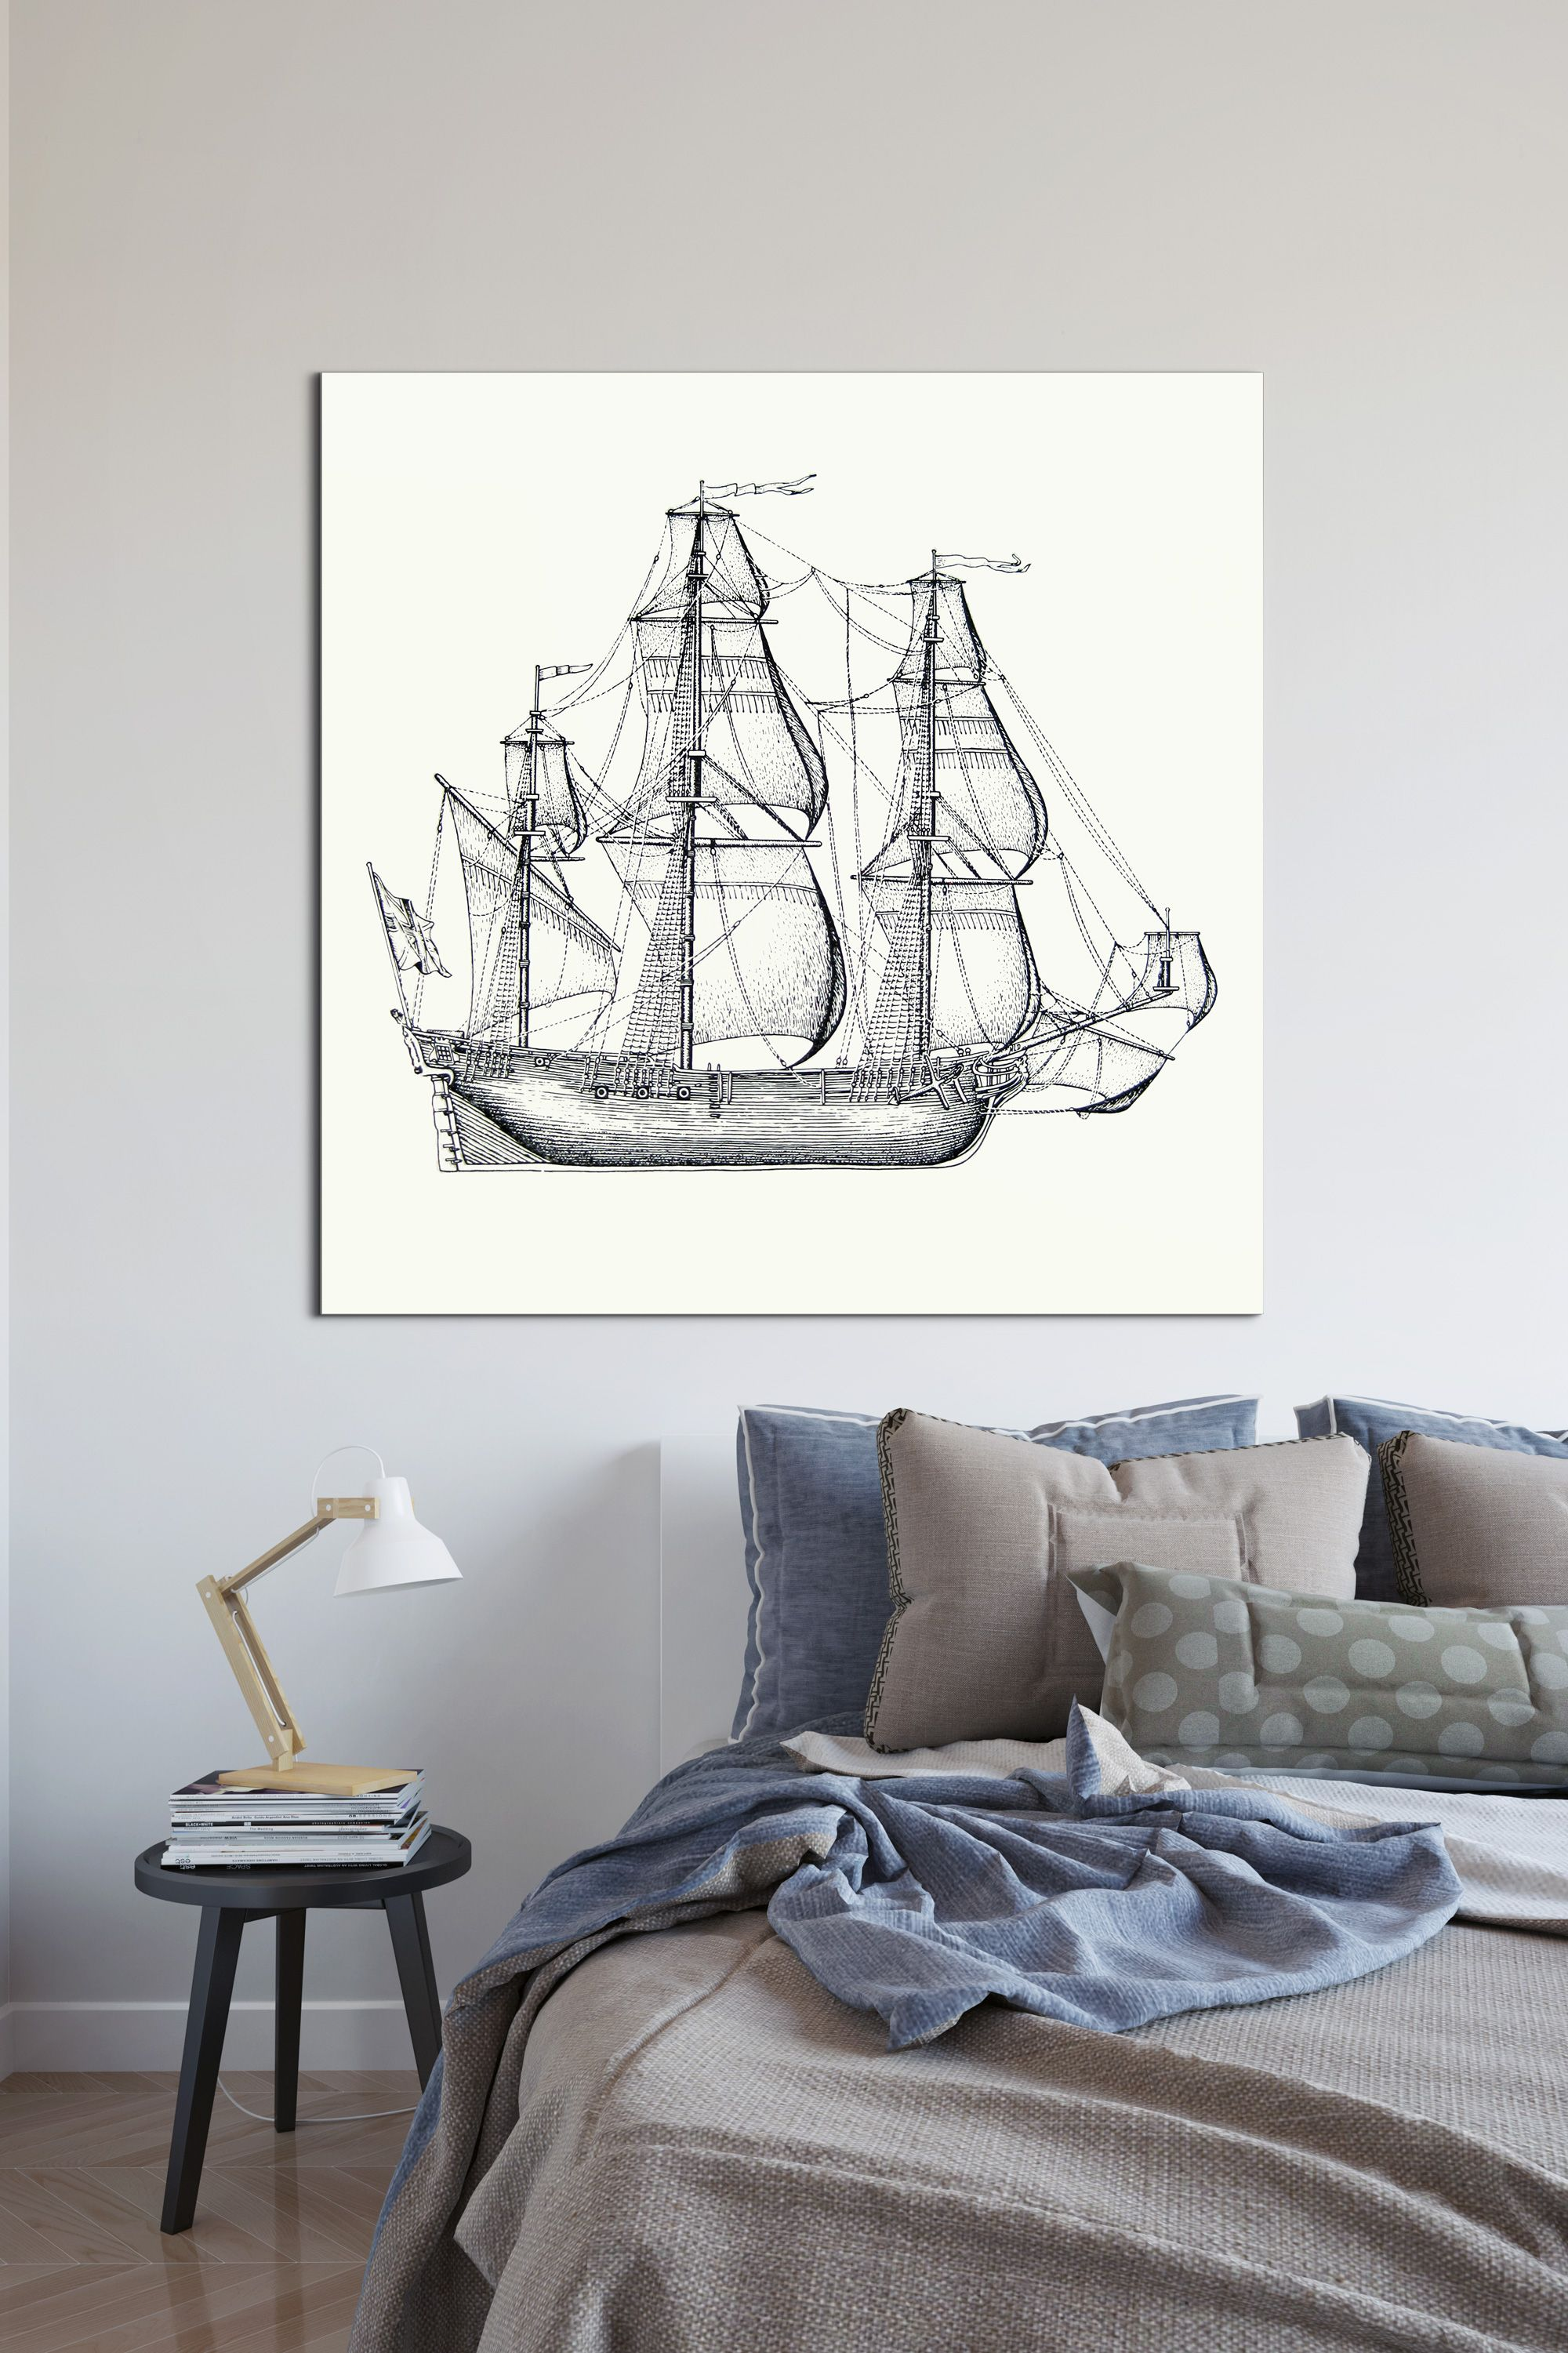 Pirates Are Sea Bandit Who Robs Ships That S Terrible But Old Adventure Books And Modern Movies Created A Romantic Fleur Around Them And Now We Imag Art Prints